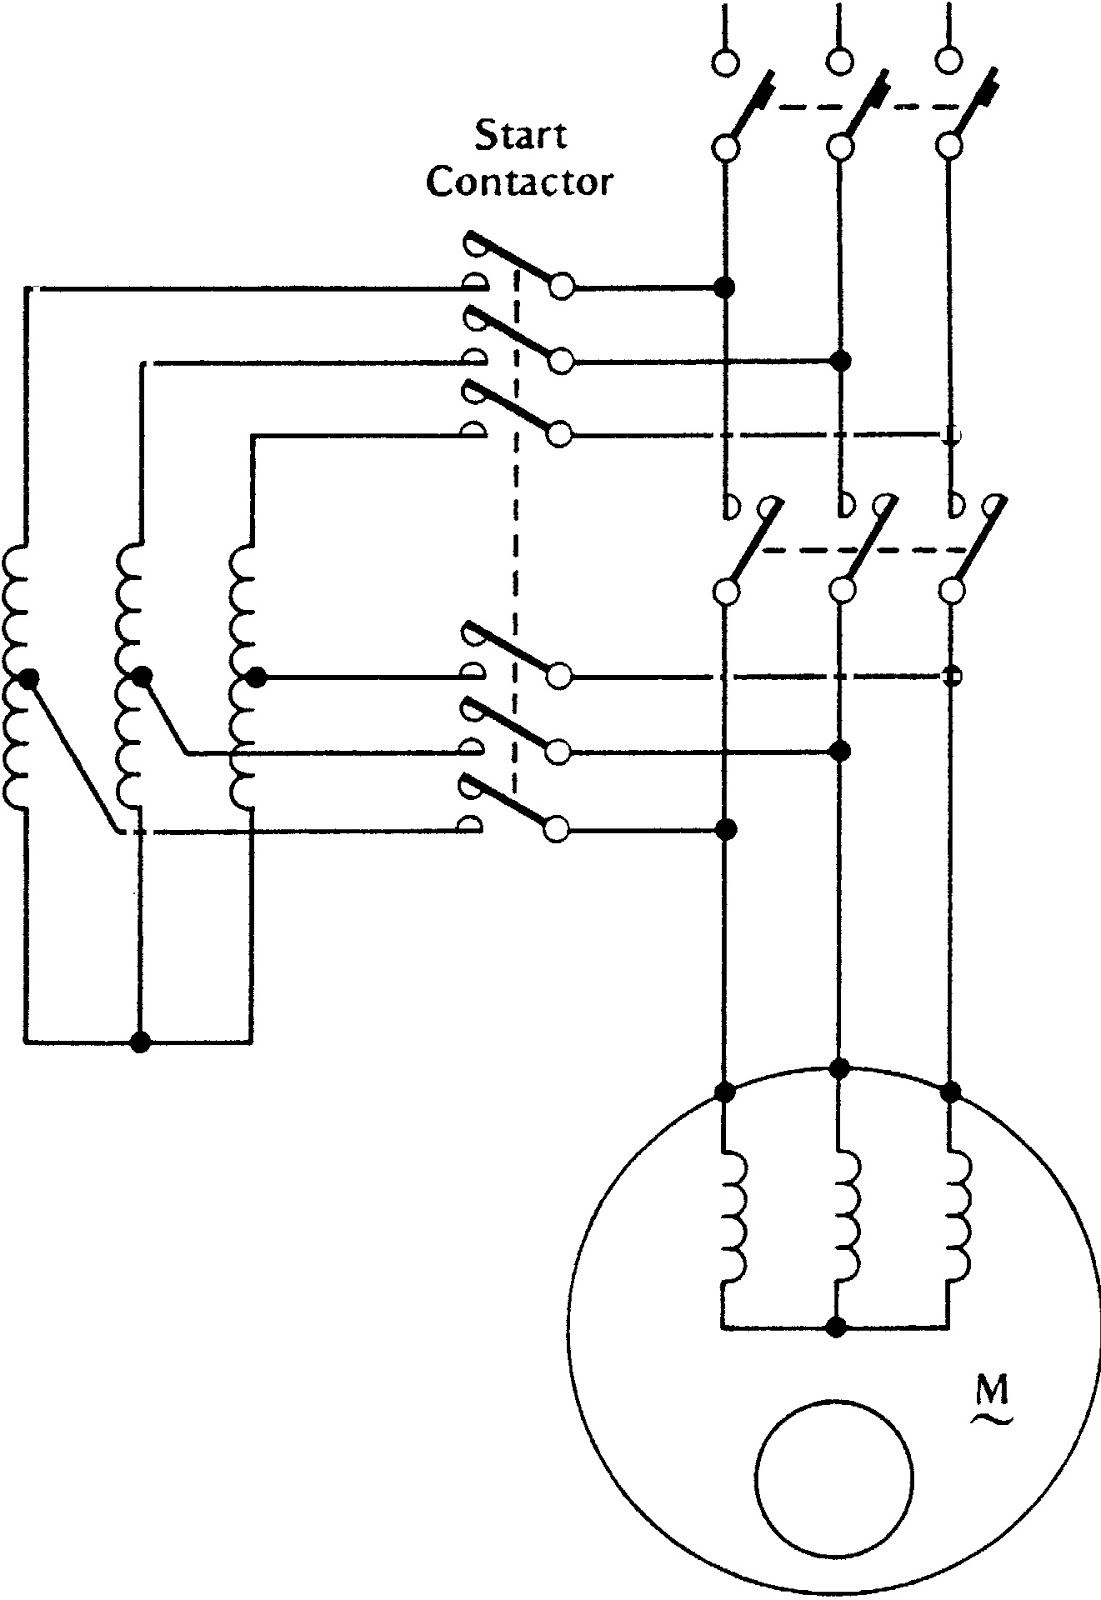 wiring diagram 12 lead 3 phase motor with Leland Electric Motor Wiring Diagram on 480 Volt 3 Phase Lighting Wiring Diagram further Dayton Electric Motor 3 Phase 12 Lead Wiring Diagram likewise Reversible Ac Motor Wiring Diagram also 3 Phase Delta Motor Windings Diagram in addition Eurodrive Motor Wiring Diagram.